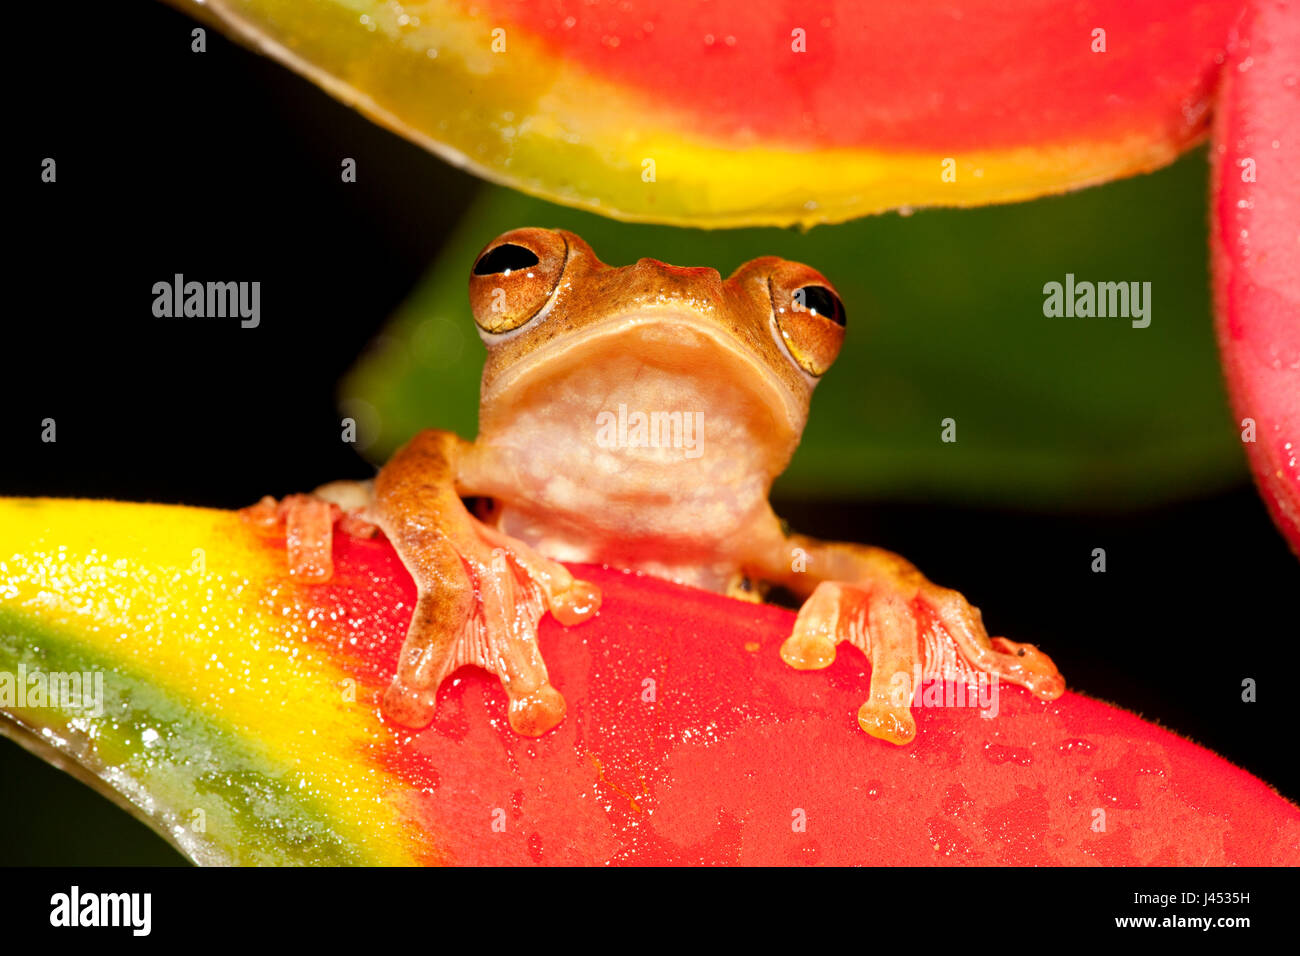 portait of a Harlequin tree frog looking between the flowers of a Crab Claw Flower - Stock Image